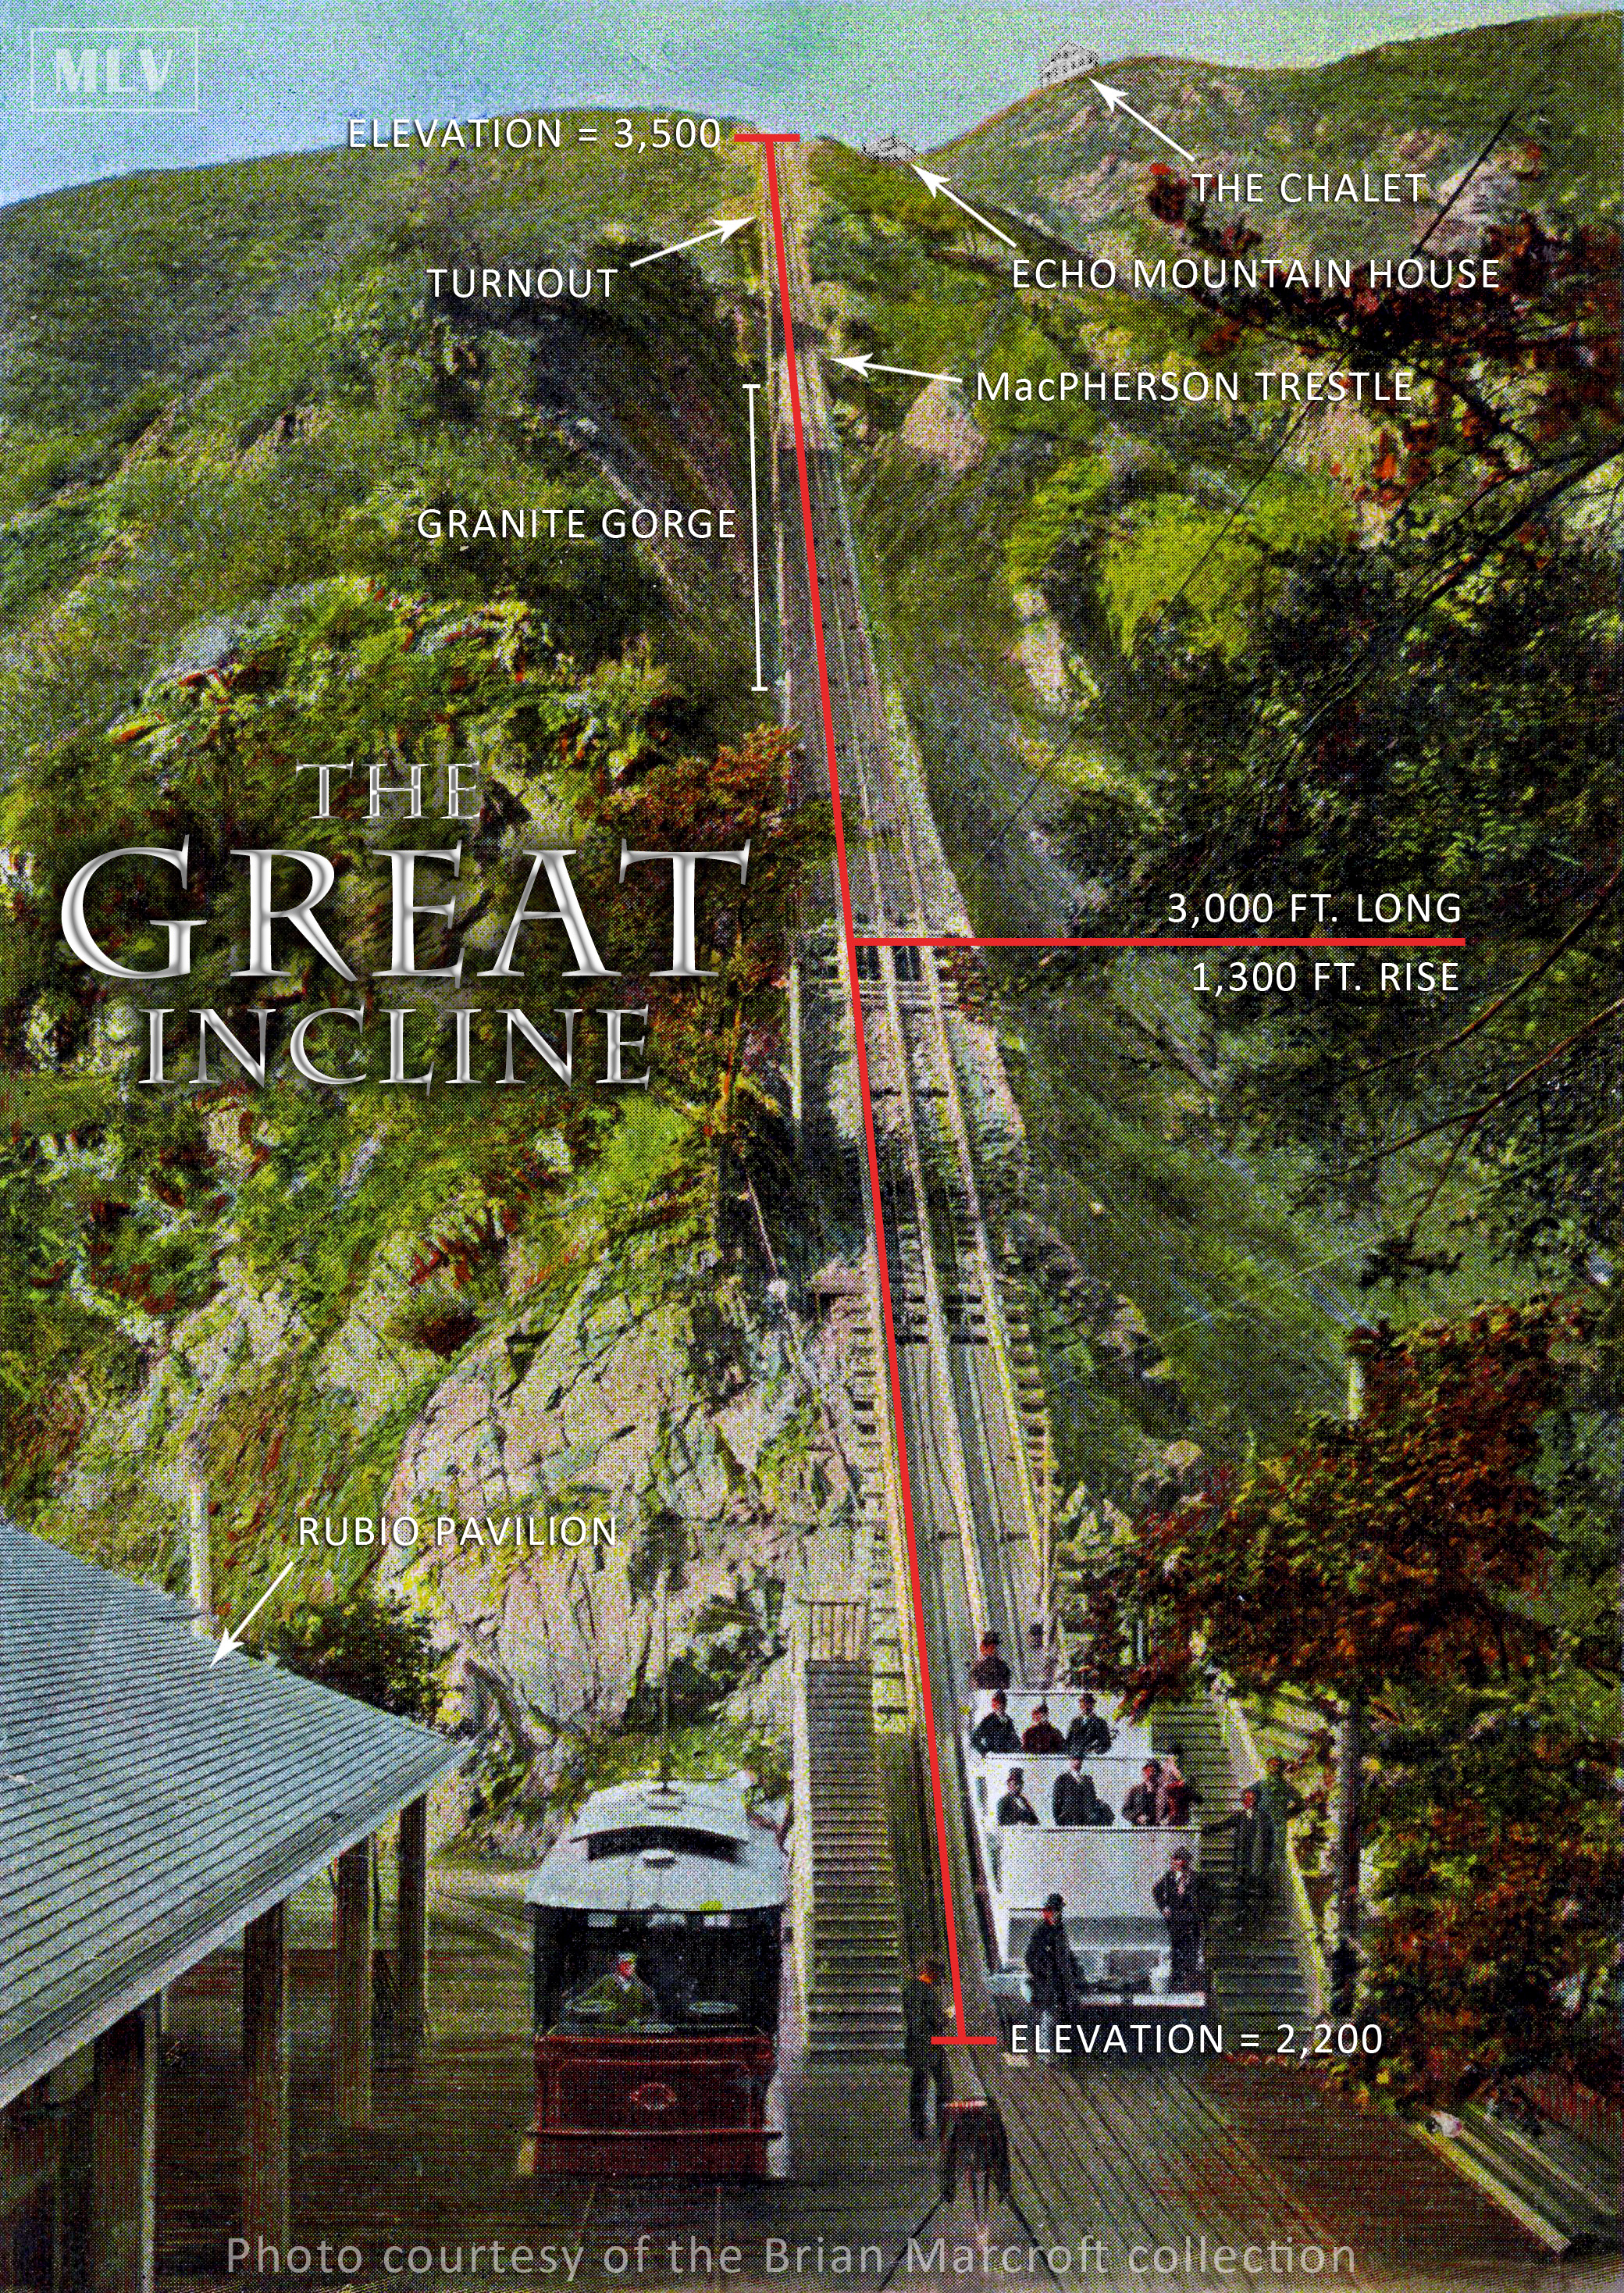 The Great Incline